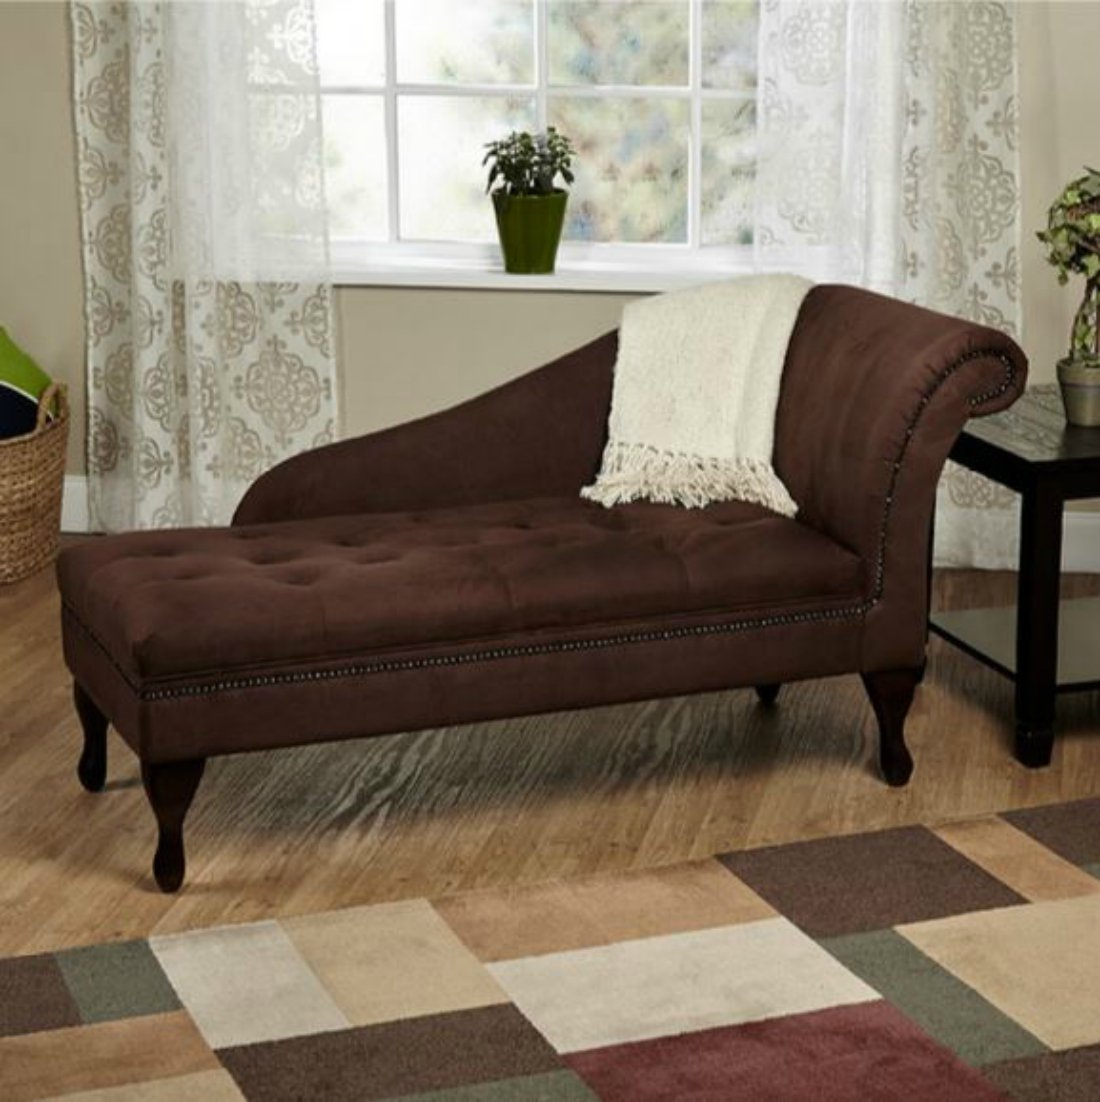 Superb Amazon.com: Modern Storage Chaise Lounge Chair   This Tufted Cushions Is  Microfiber Upholstered   Perfect For Your Living Room, Bedroom, Or Any  Space In ...